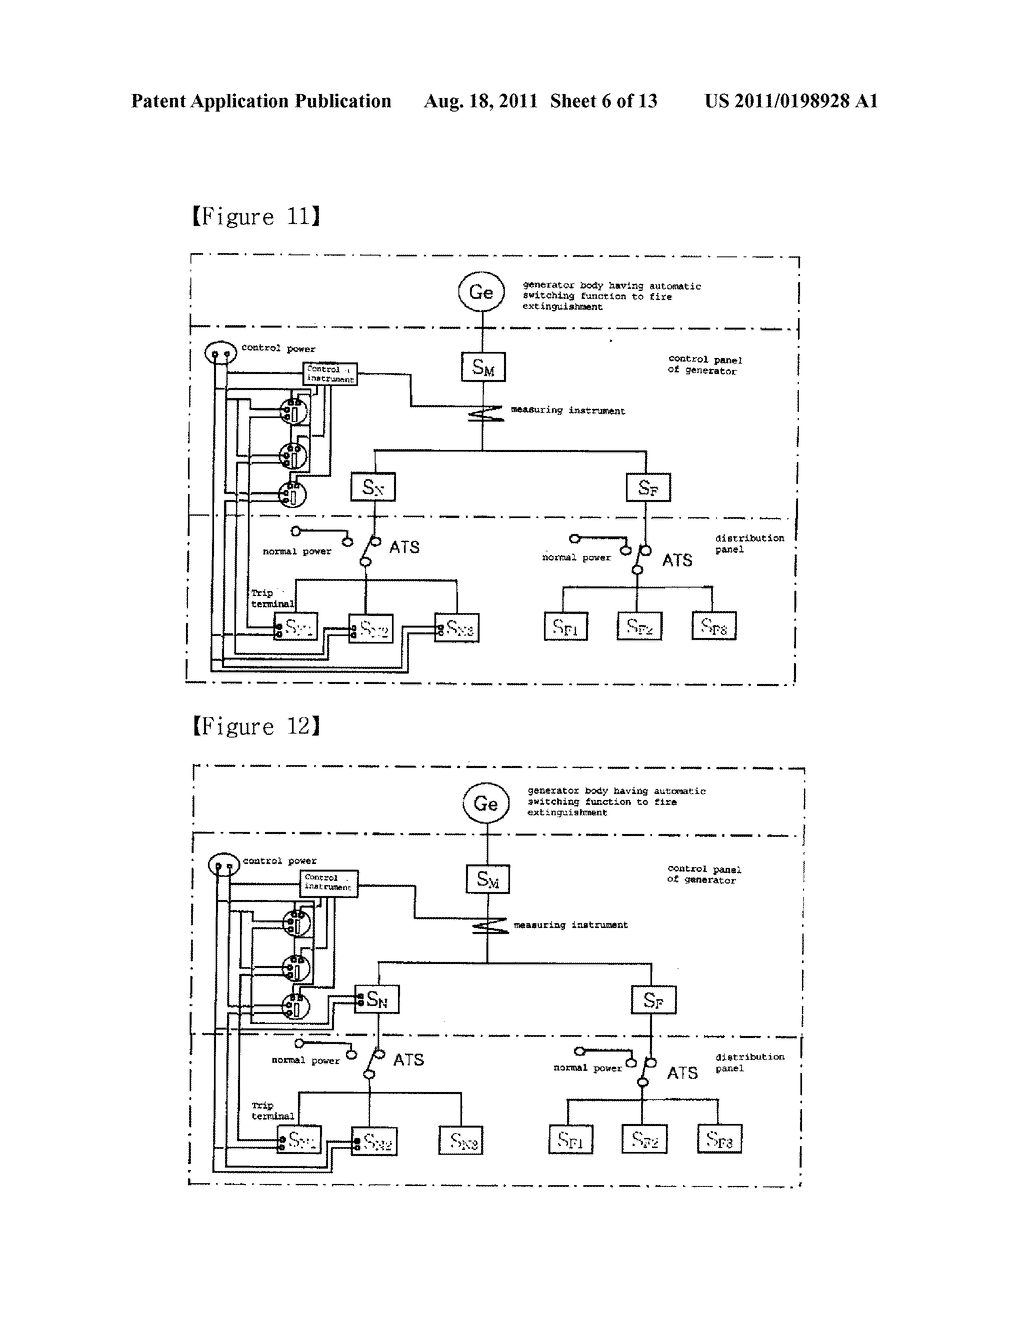 hight resolution of emergency generator power system with reserved fire protection power diagram schematic and image 07